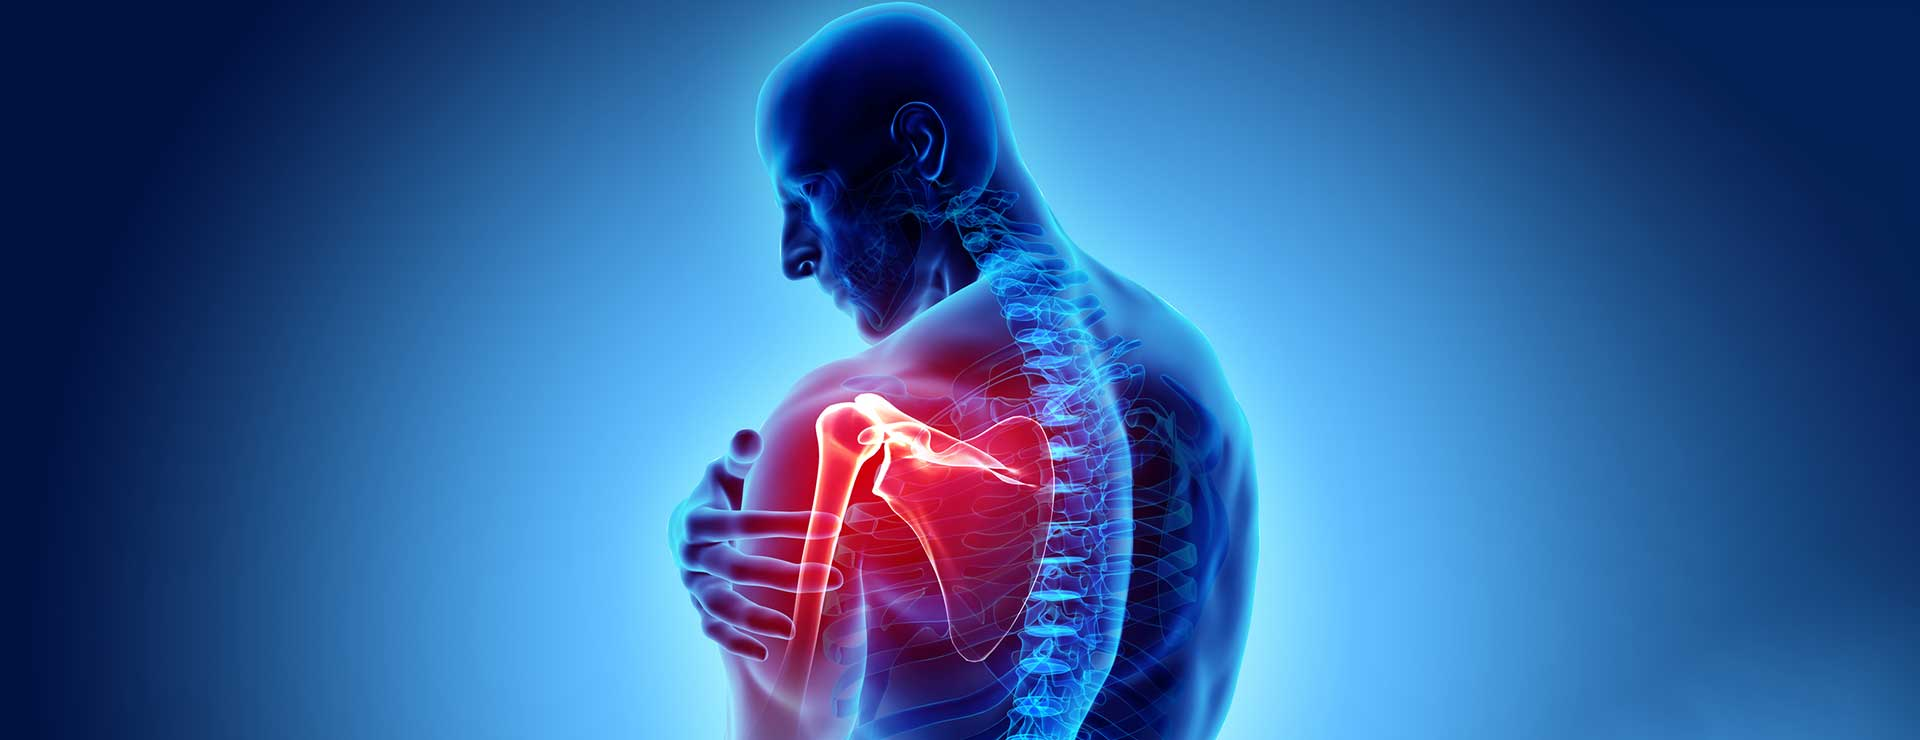 Shoulder Arthritis | Johns Hopkins Medicine